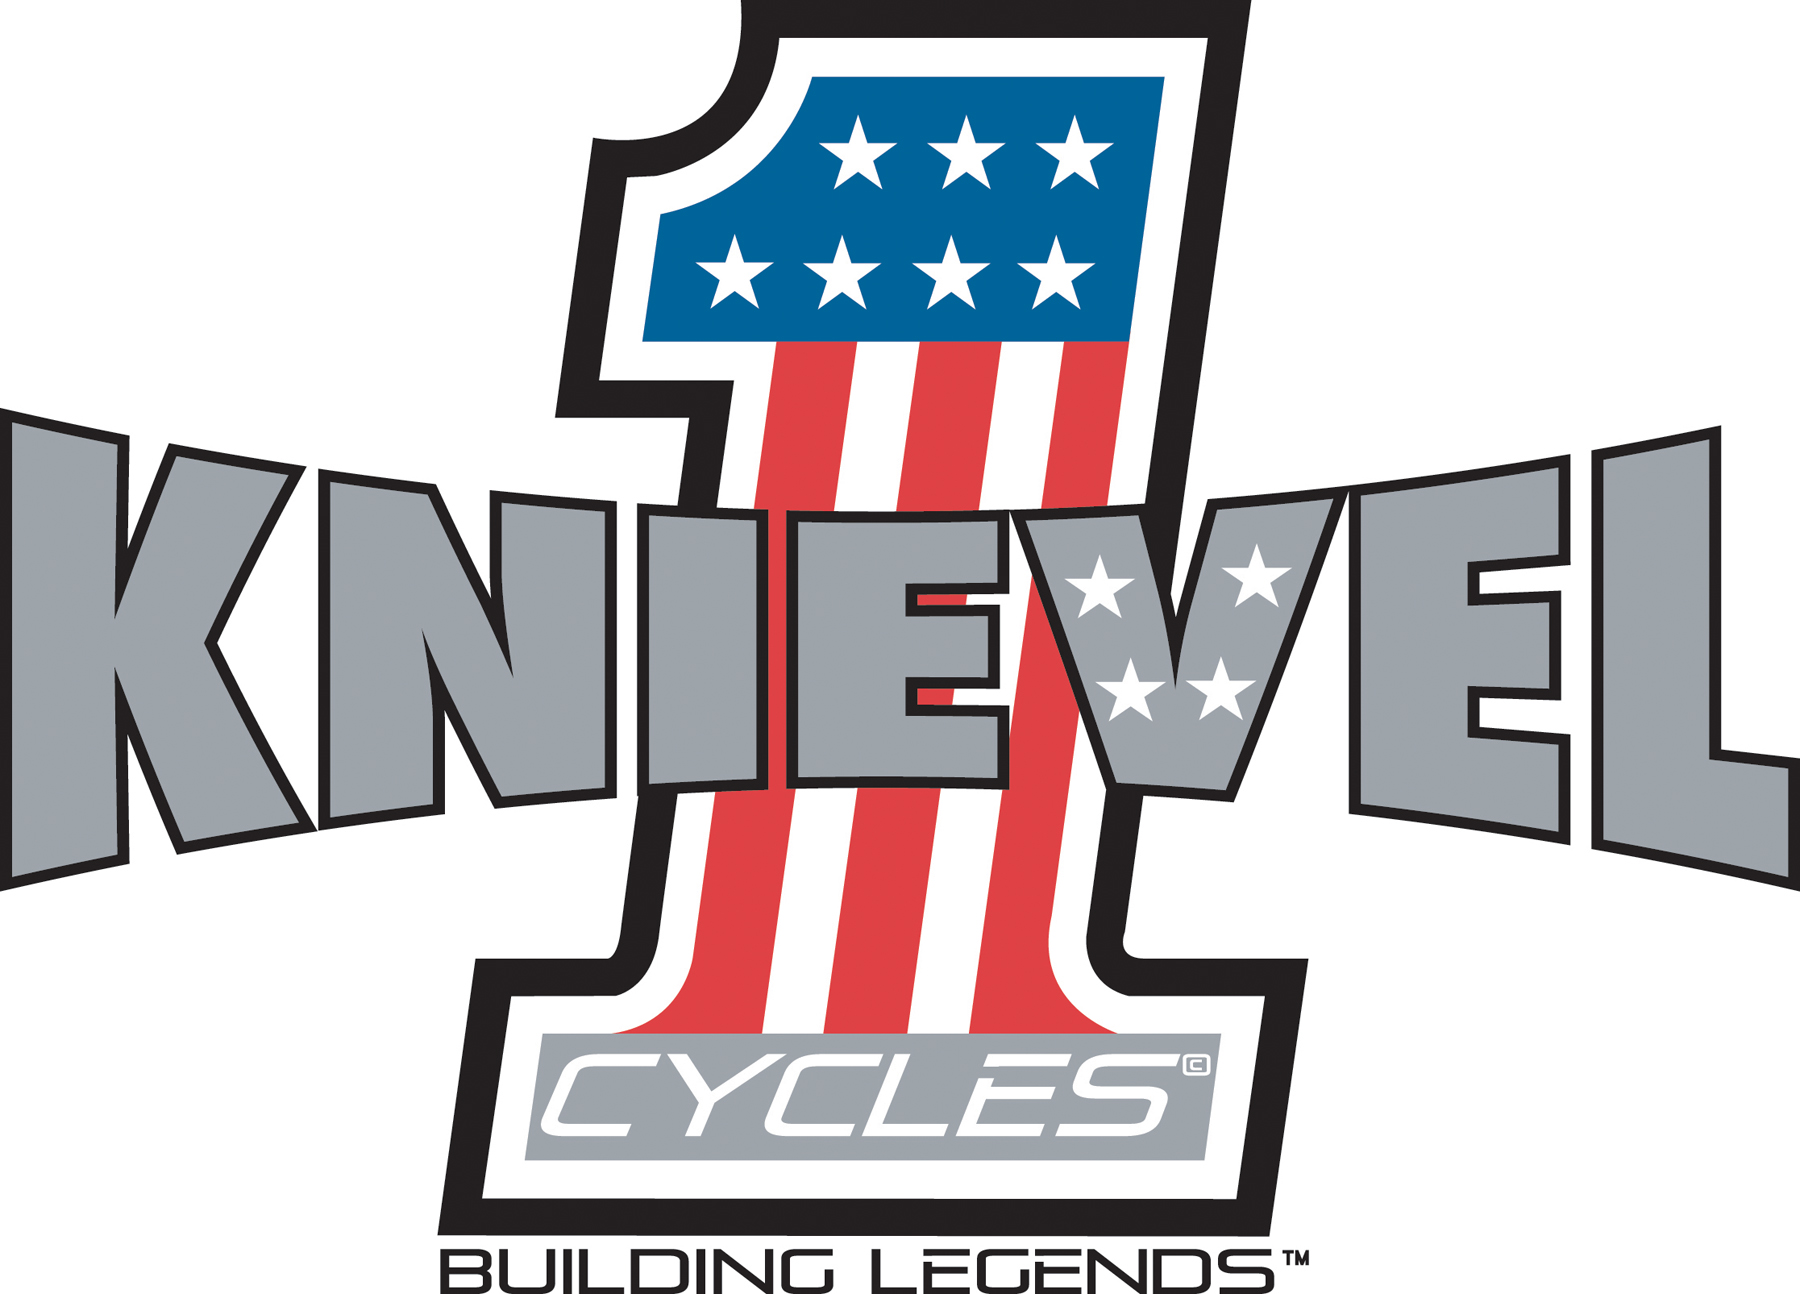 Knievel Cycles